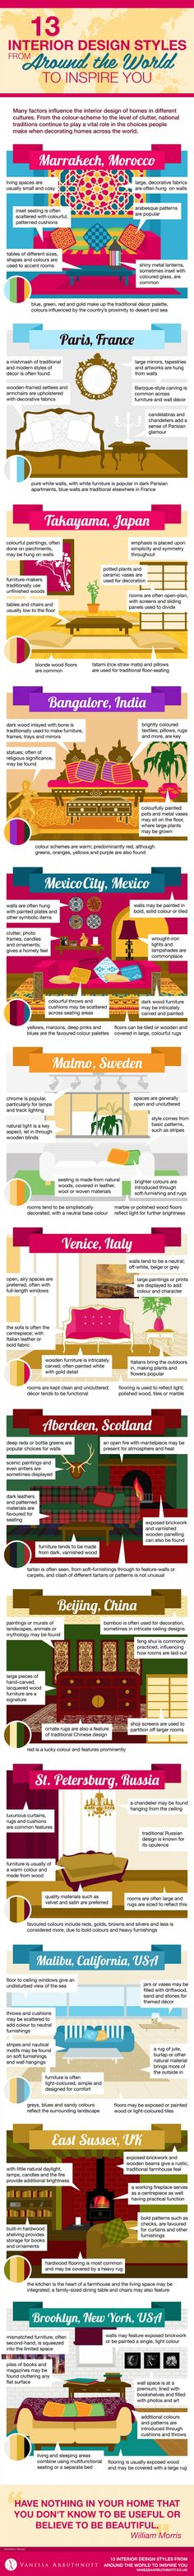 13 Interior Design Styles From Around The World To Inspire You #infographic #Home #HomeImprovement #InteriorDesign